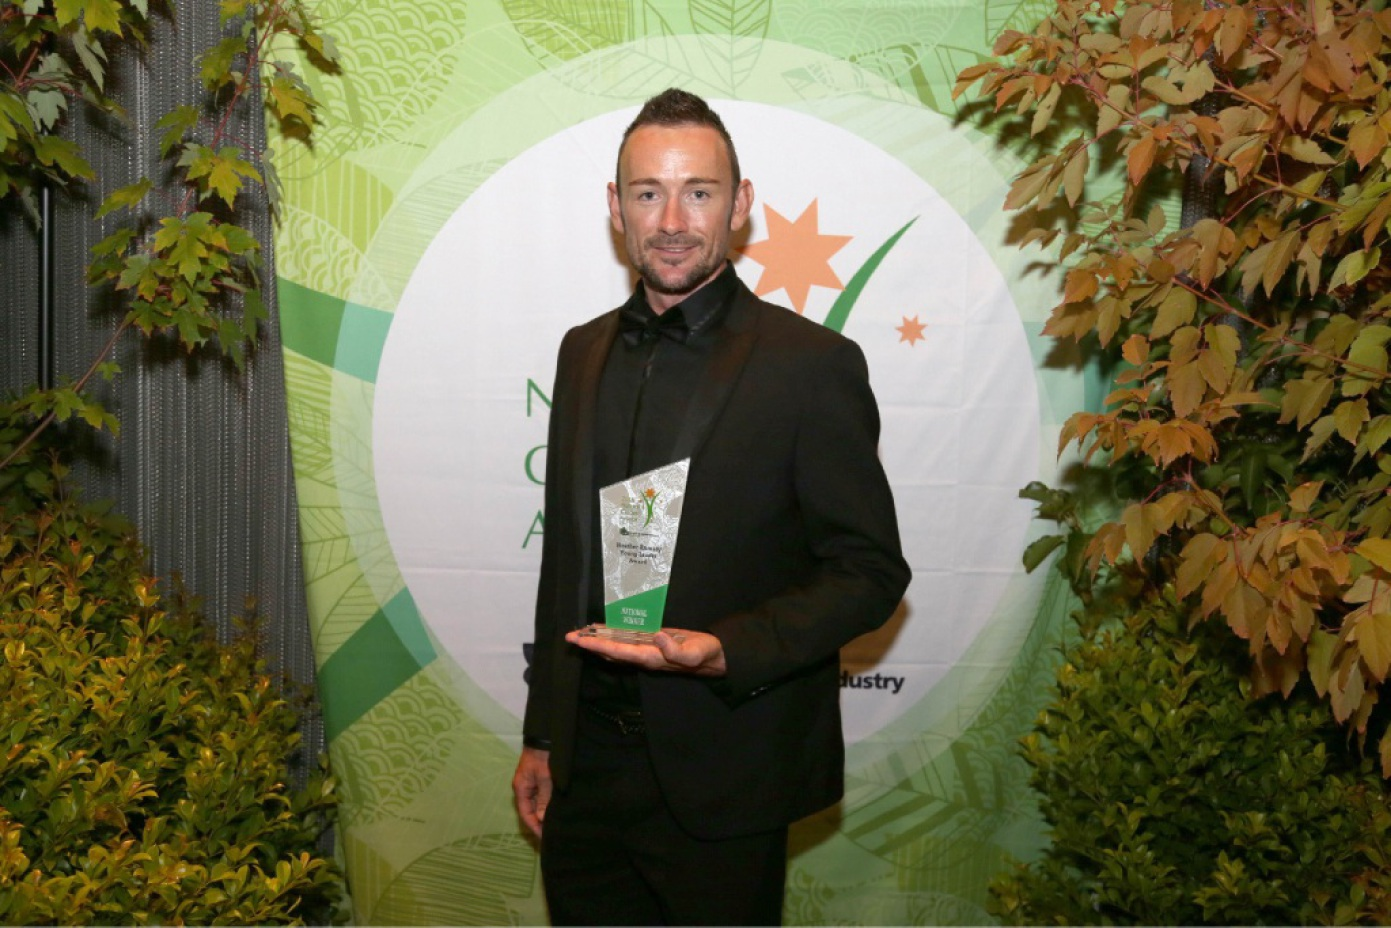 Leon Spratt has been recognised for his passion in the nursery and garden industry.